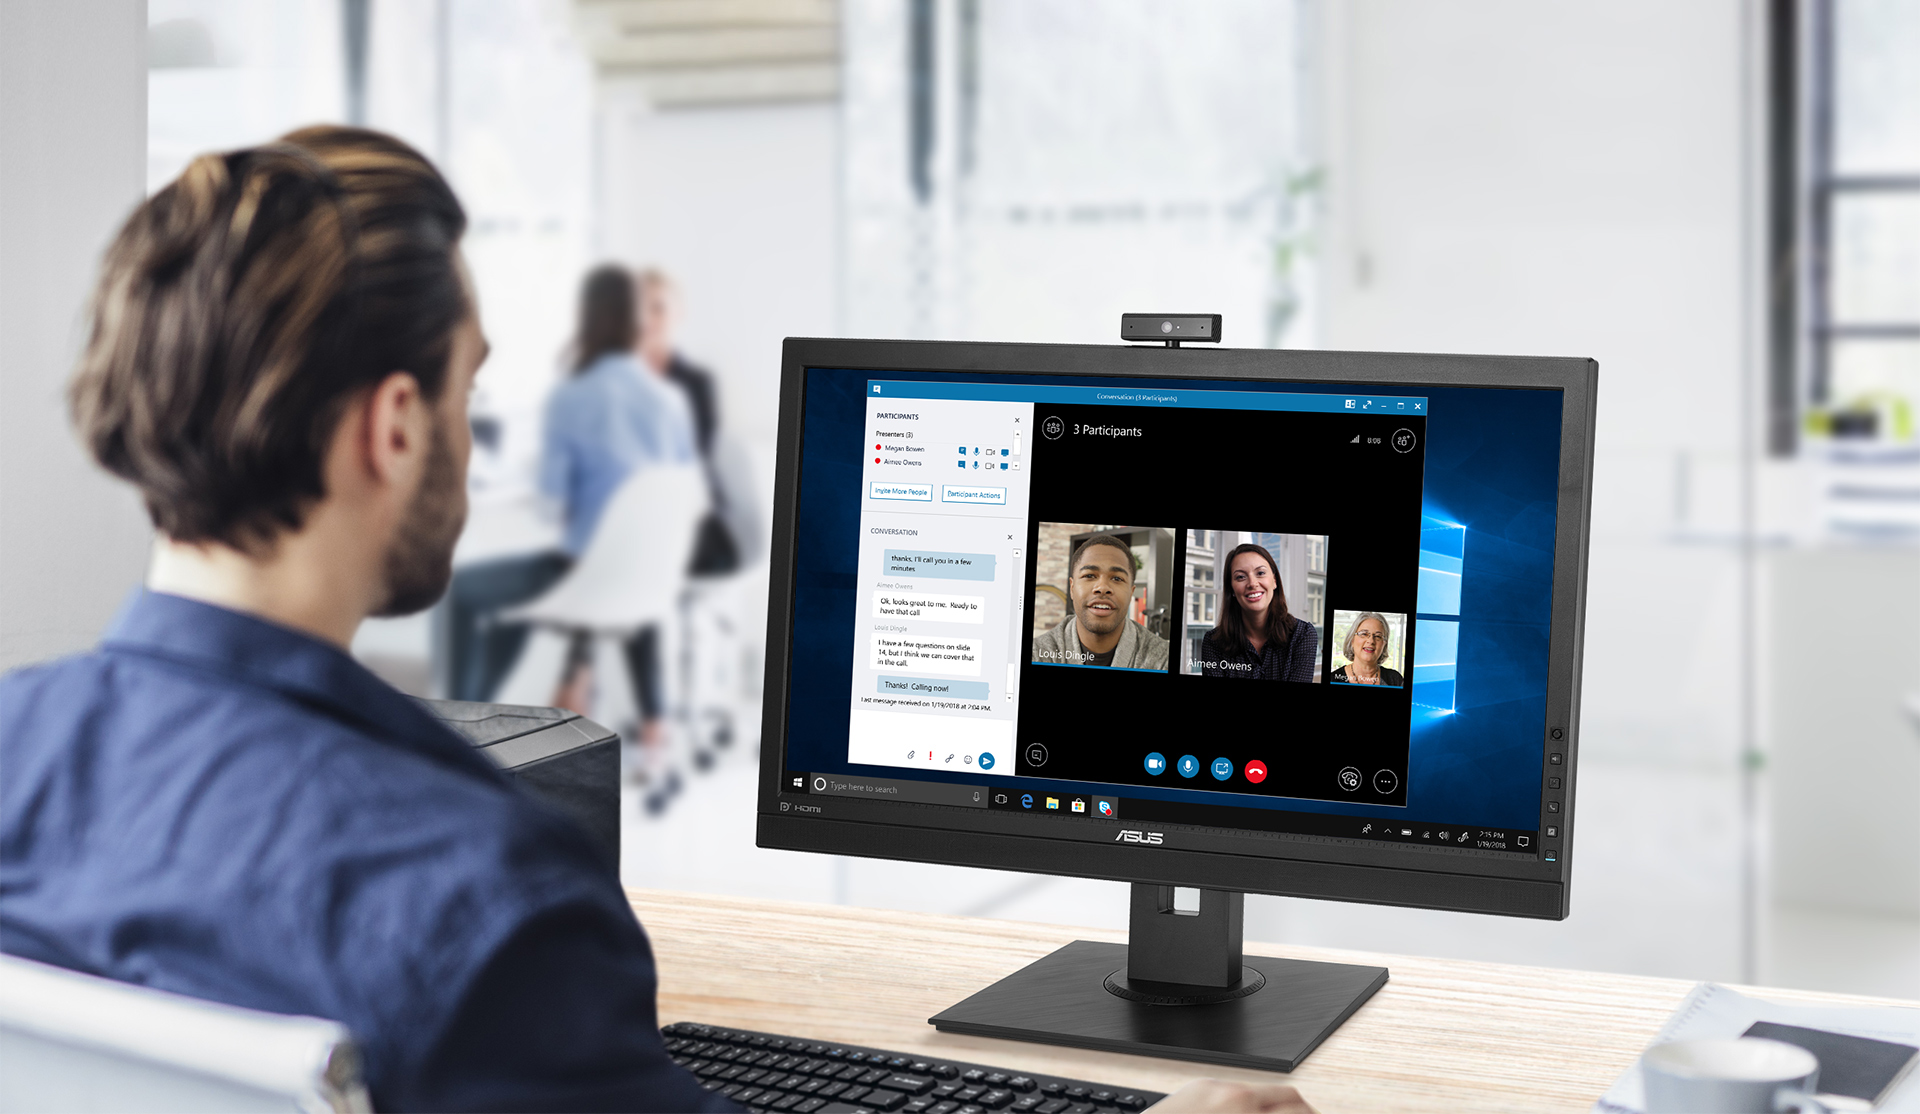 BE24DQLB is a 23.8-inch Full HD monitor that features an integrated Full HD (2MP) webcam, microphone array and stereo speakers for video conferencing and live-streaming.